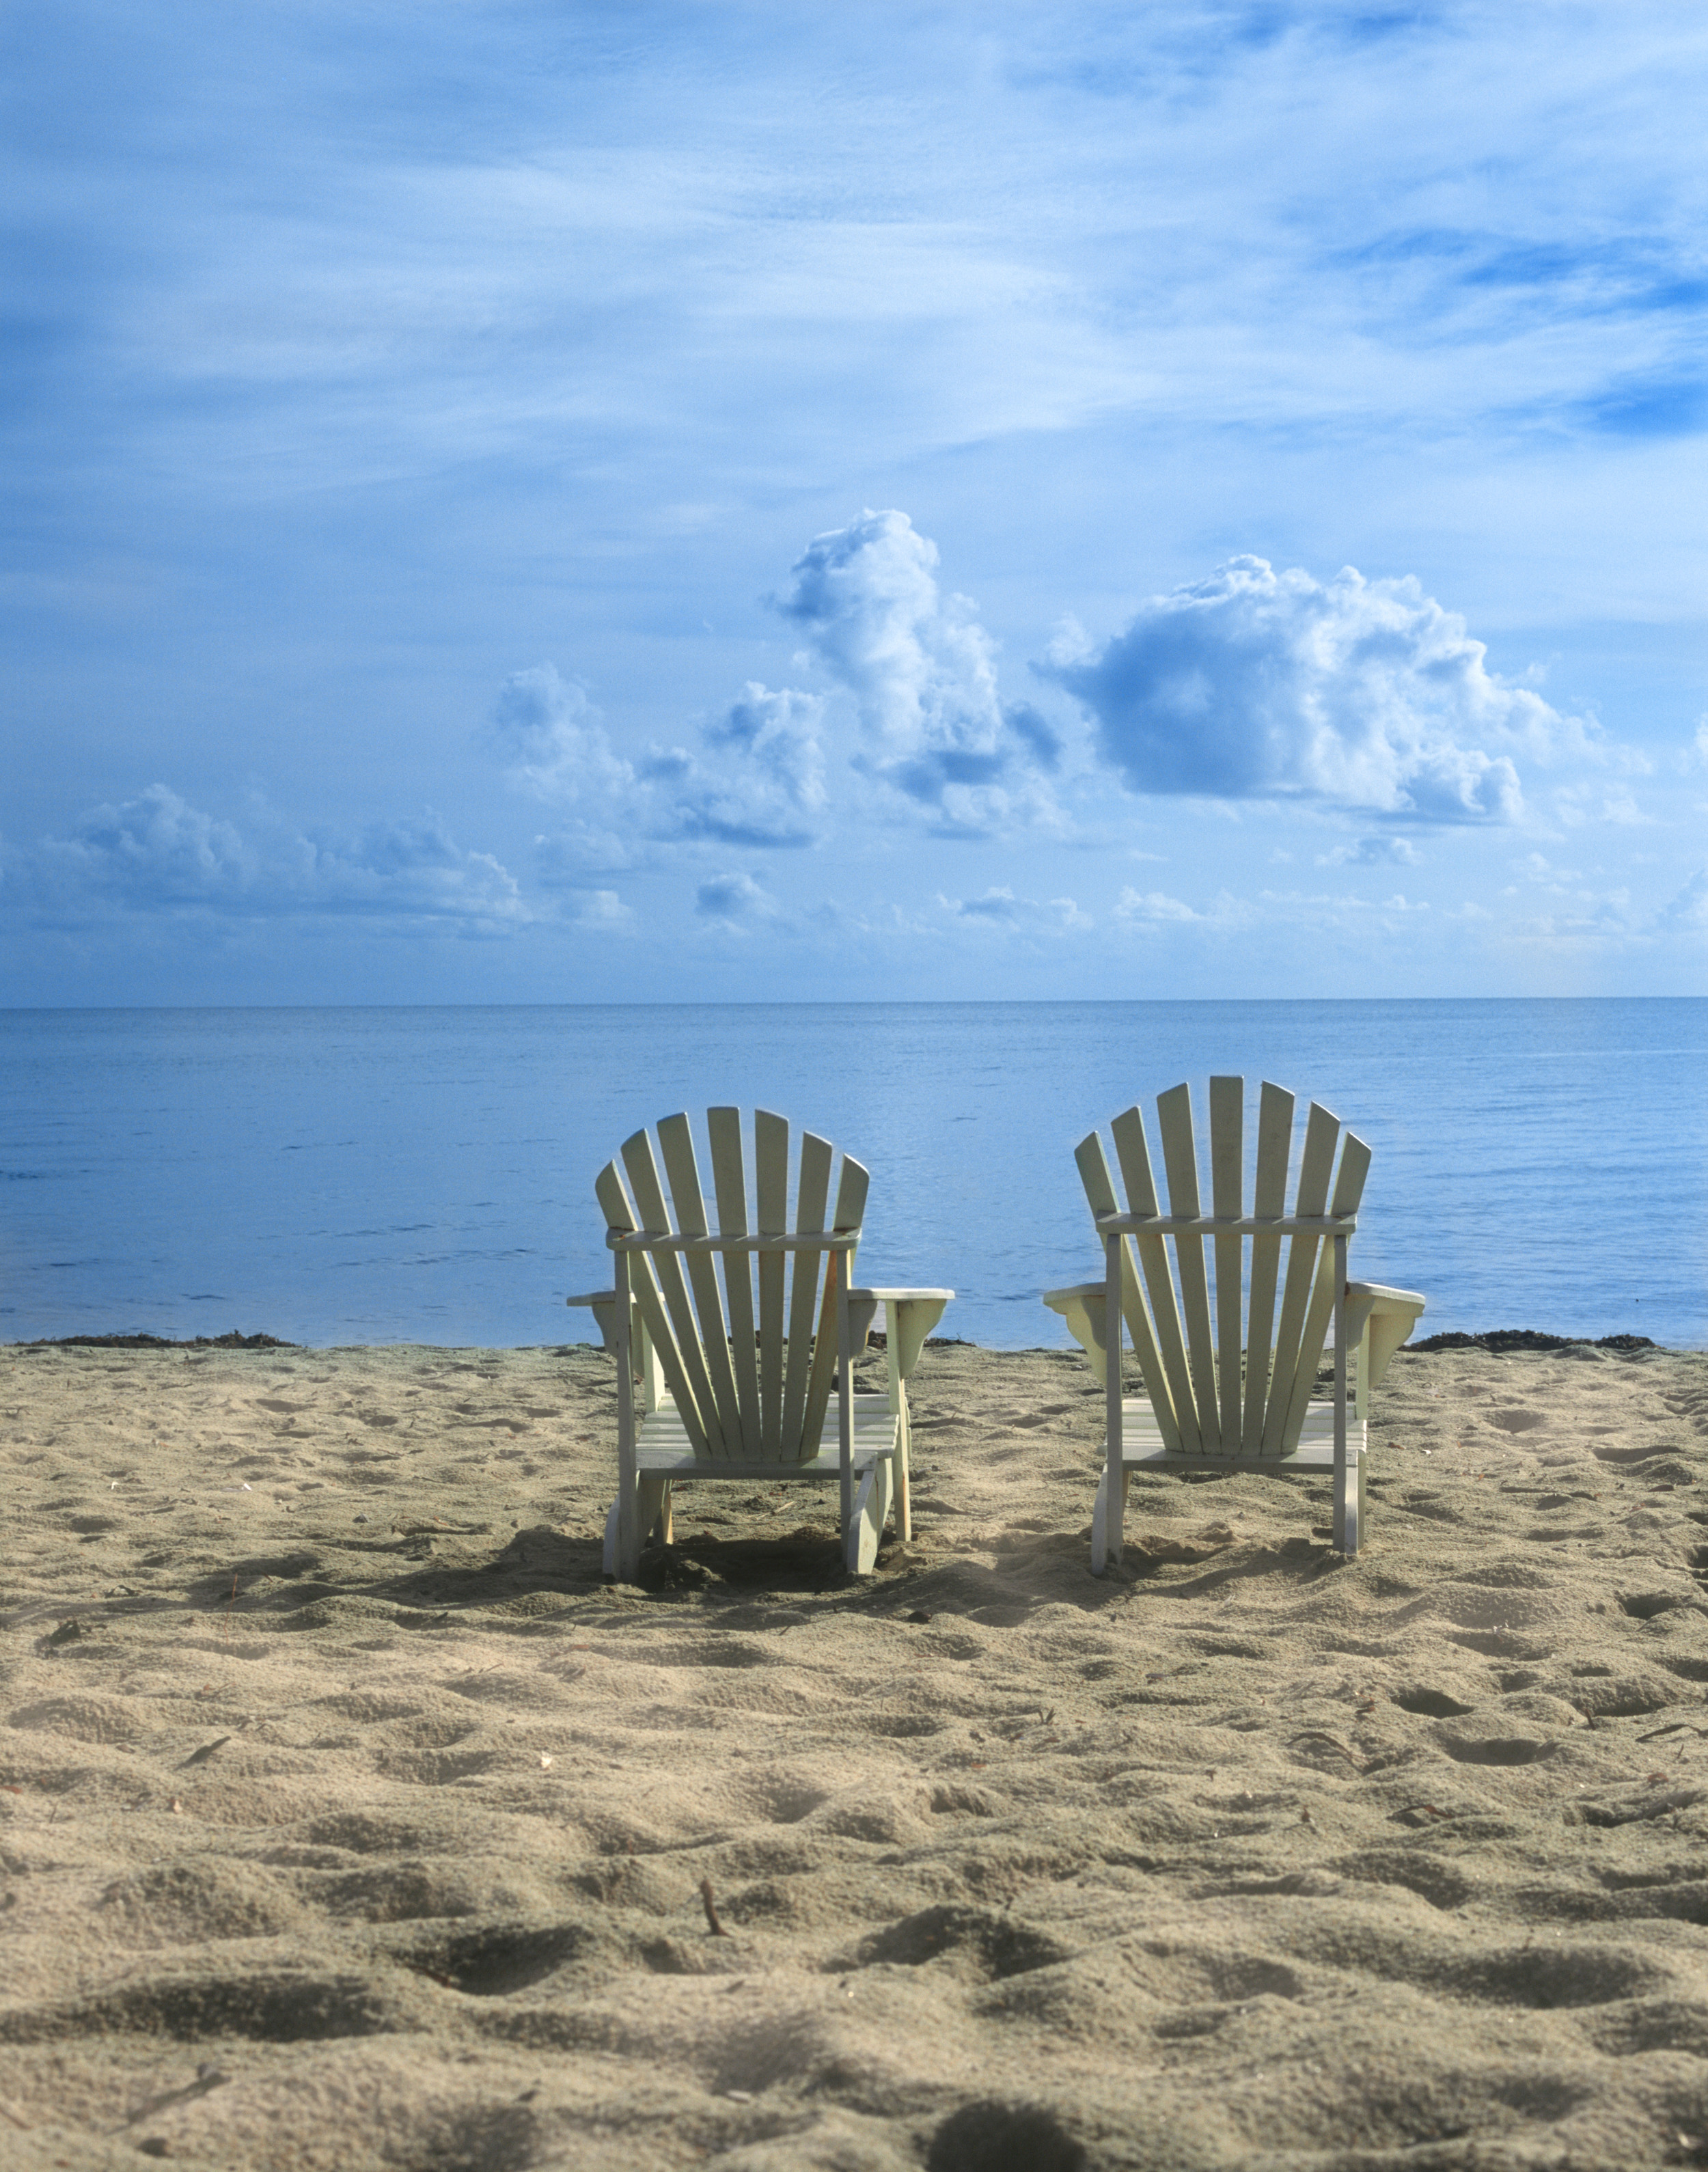 040307 Chairs on Beach.jpg